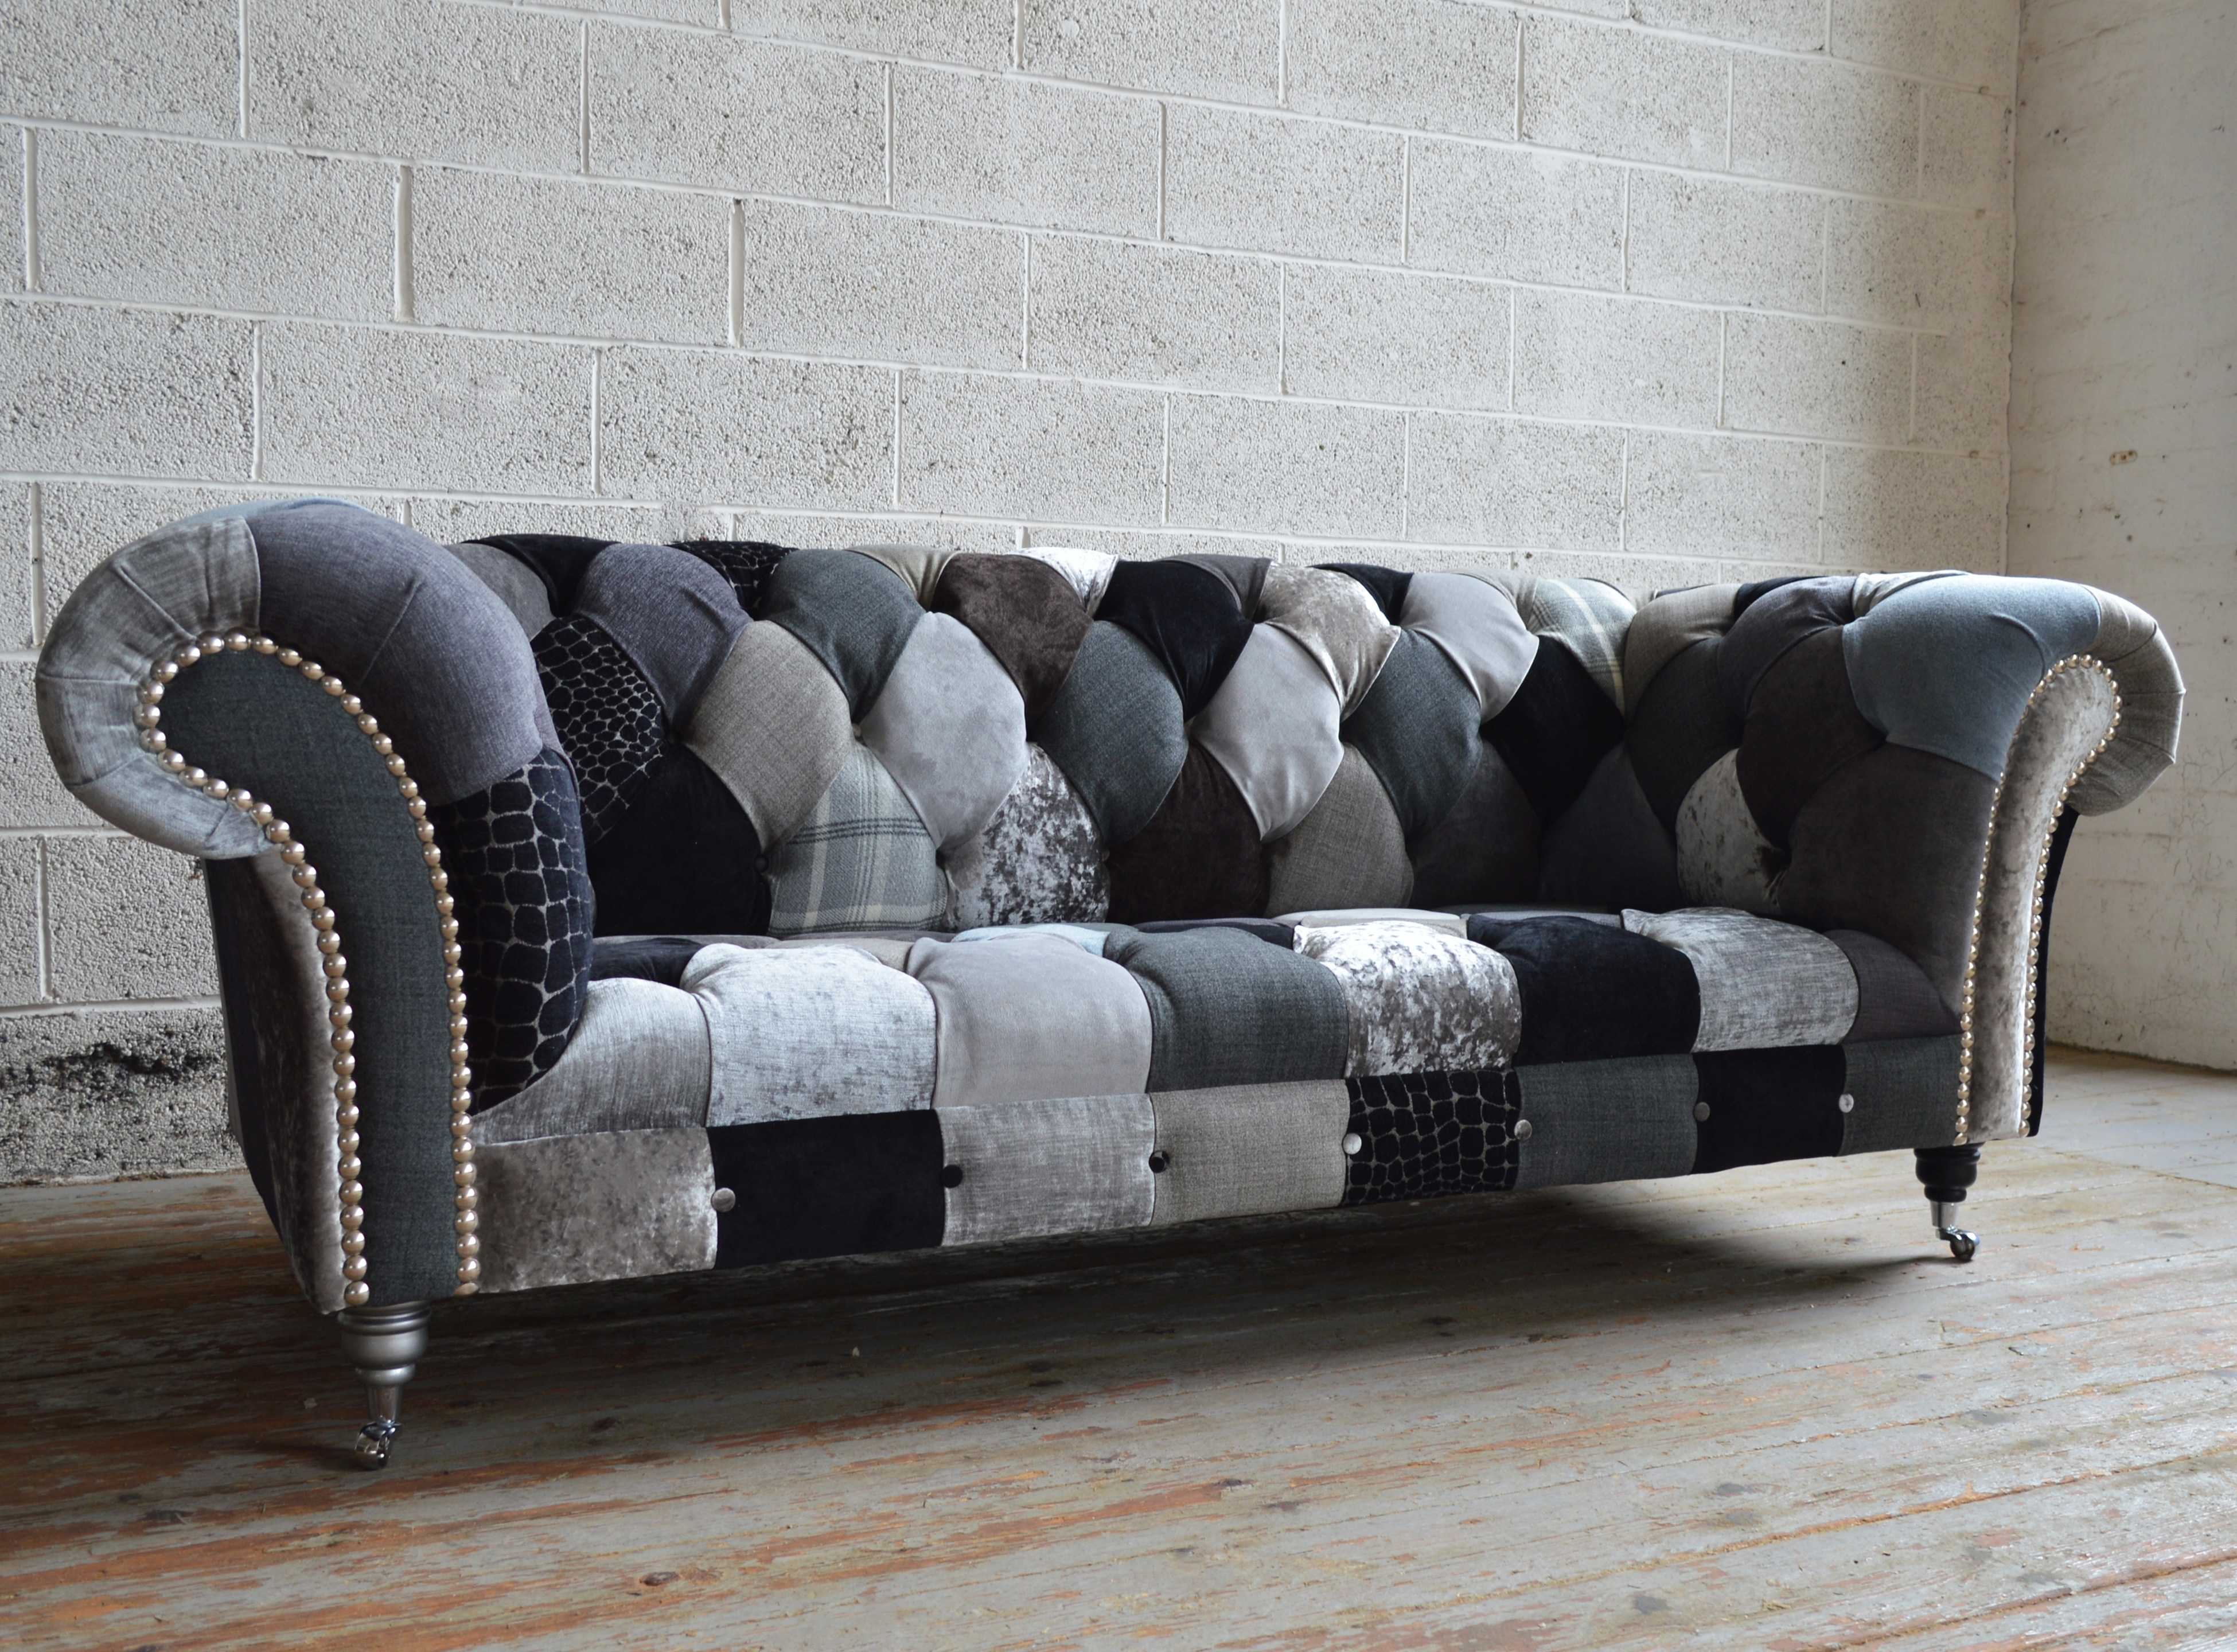 Chester Patchwork Chesterfield Sofa Abode Sofas With Regard To Chesterfield Sofas (Image 3 of 15)